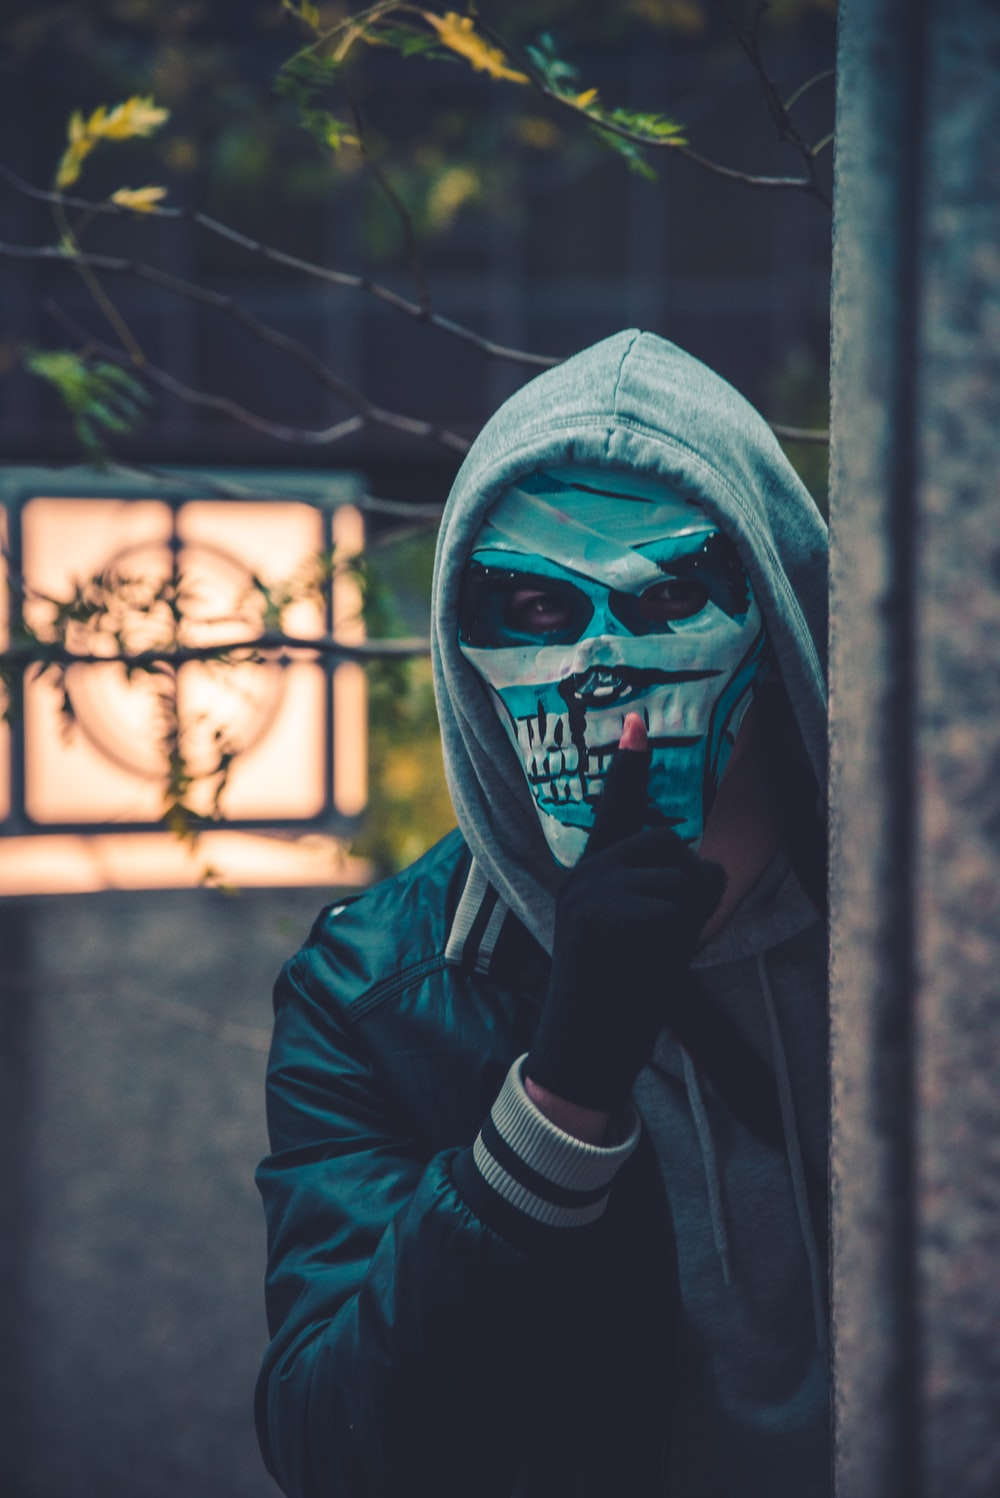 100+ mask pictures | download free images & stock photos on unsplash